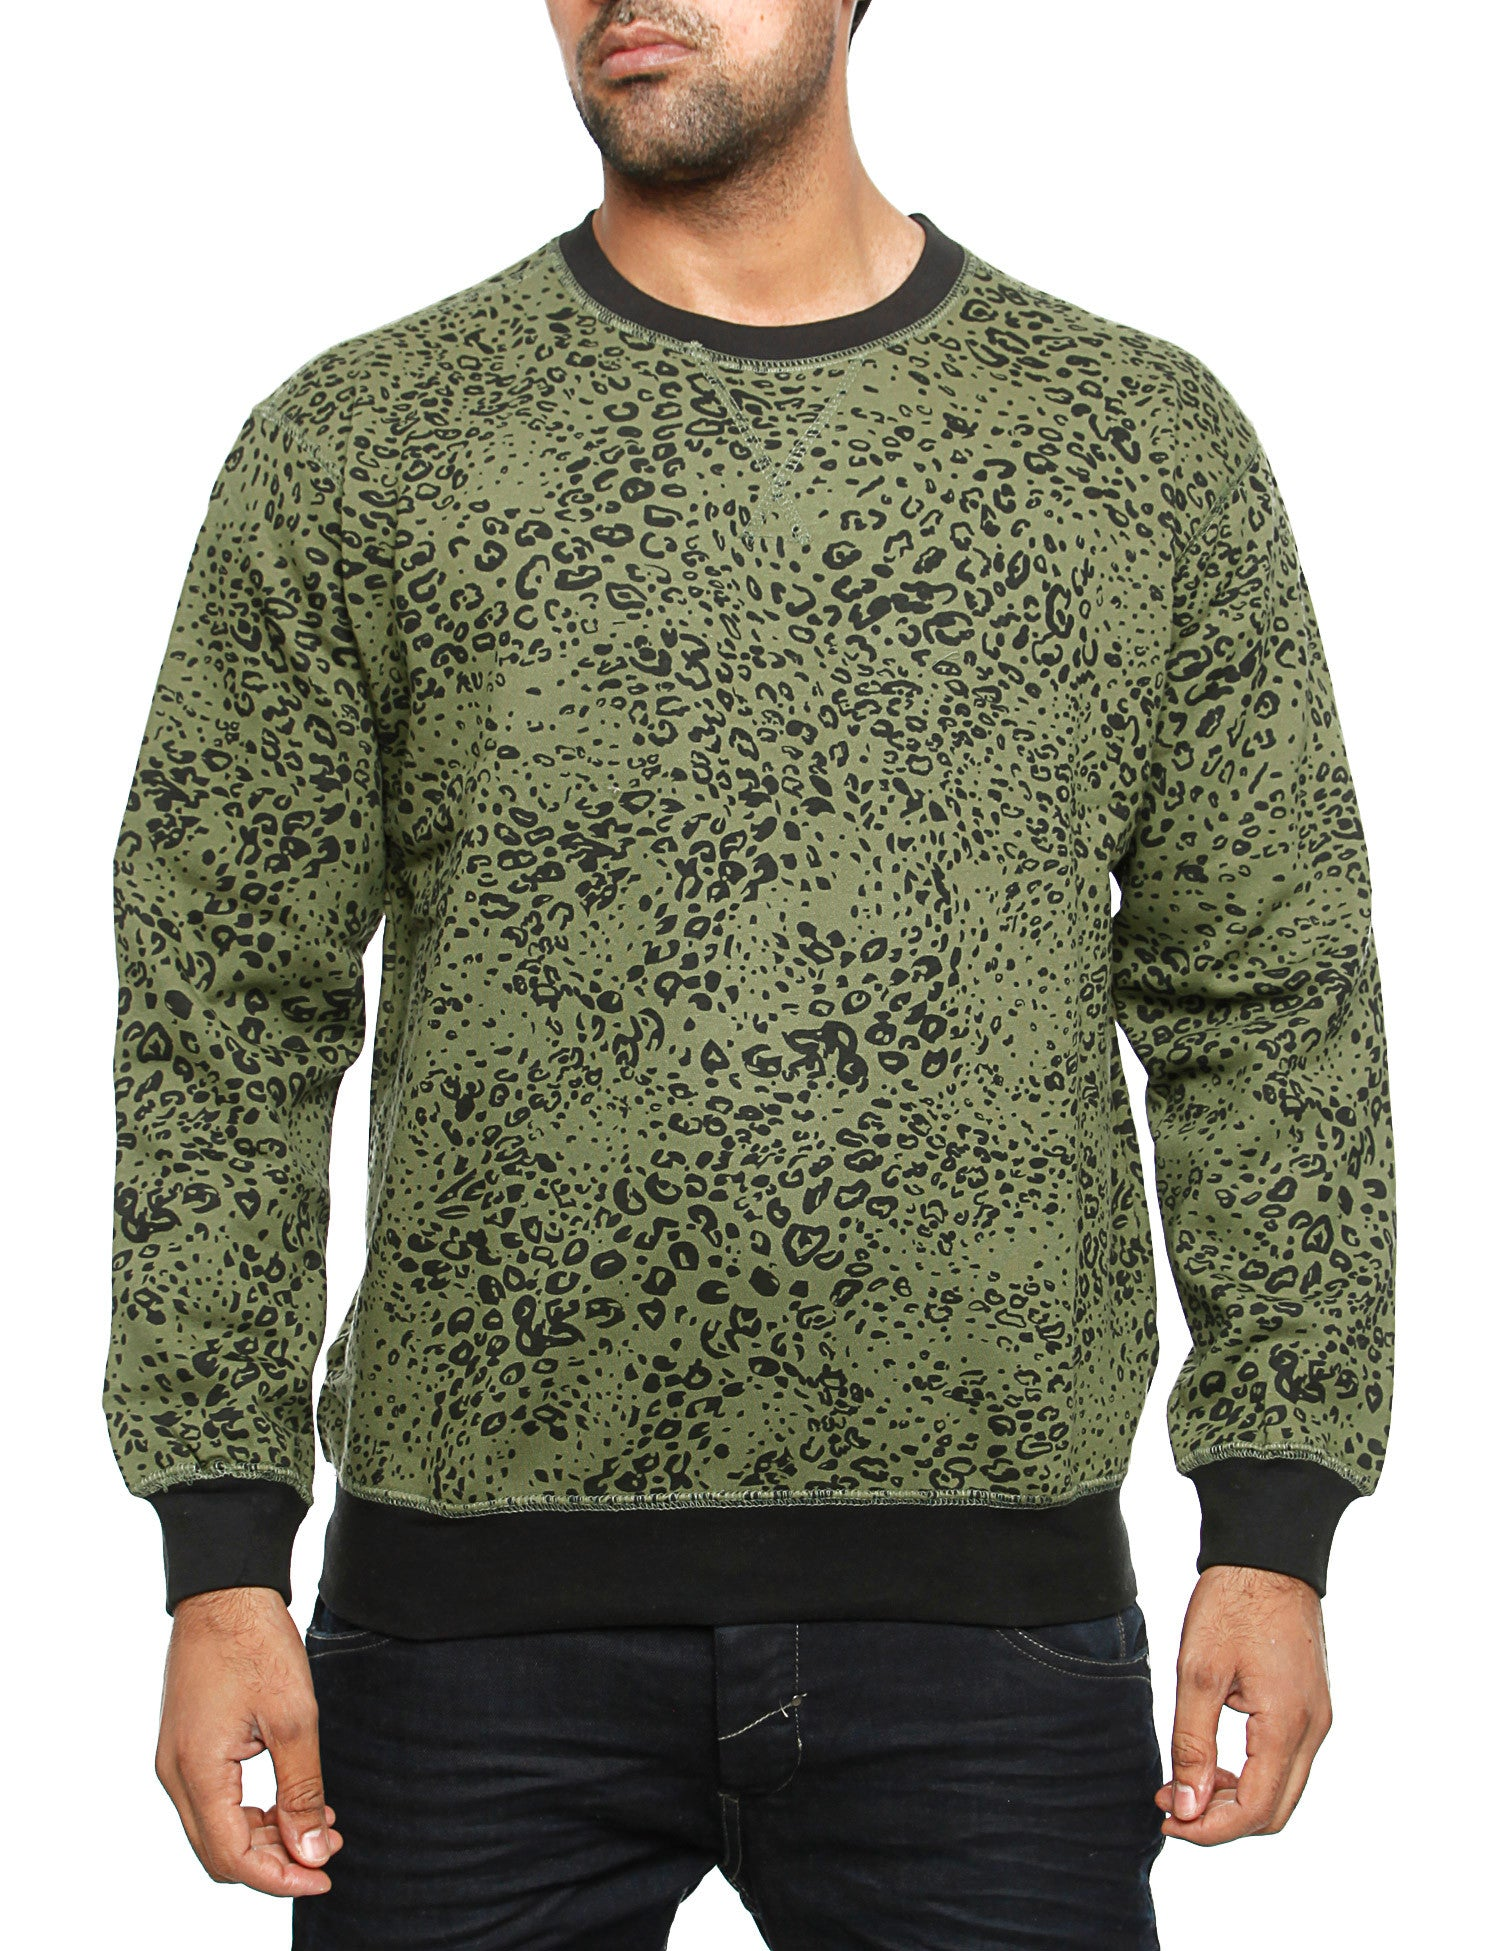 Imperious Leopard Print Crewneck Olive Green